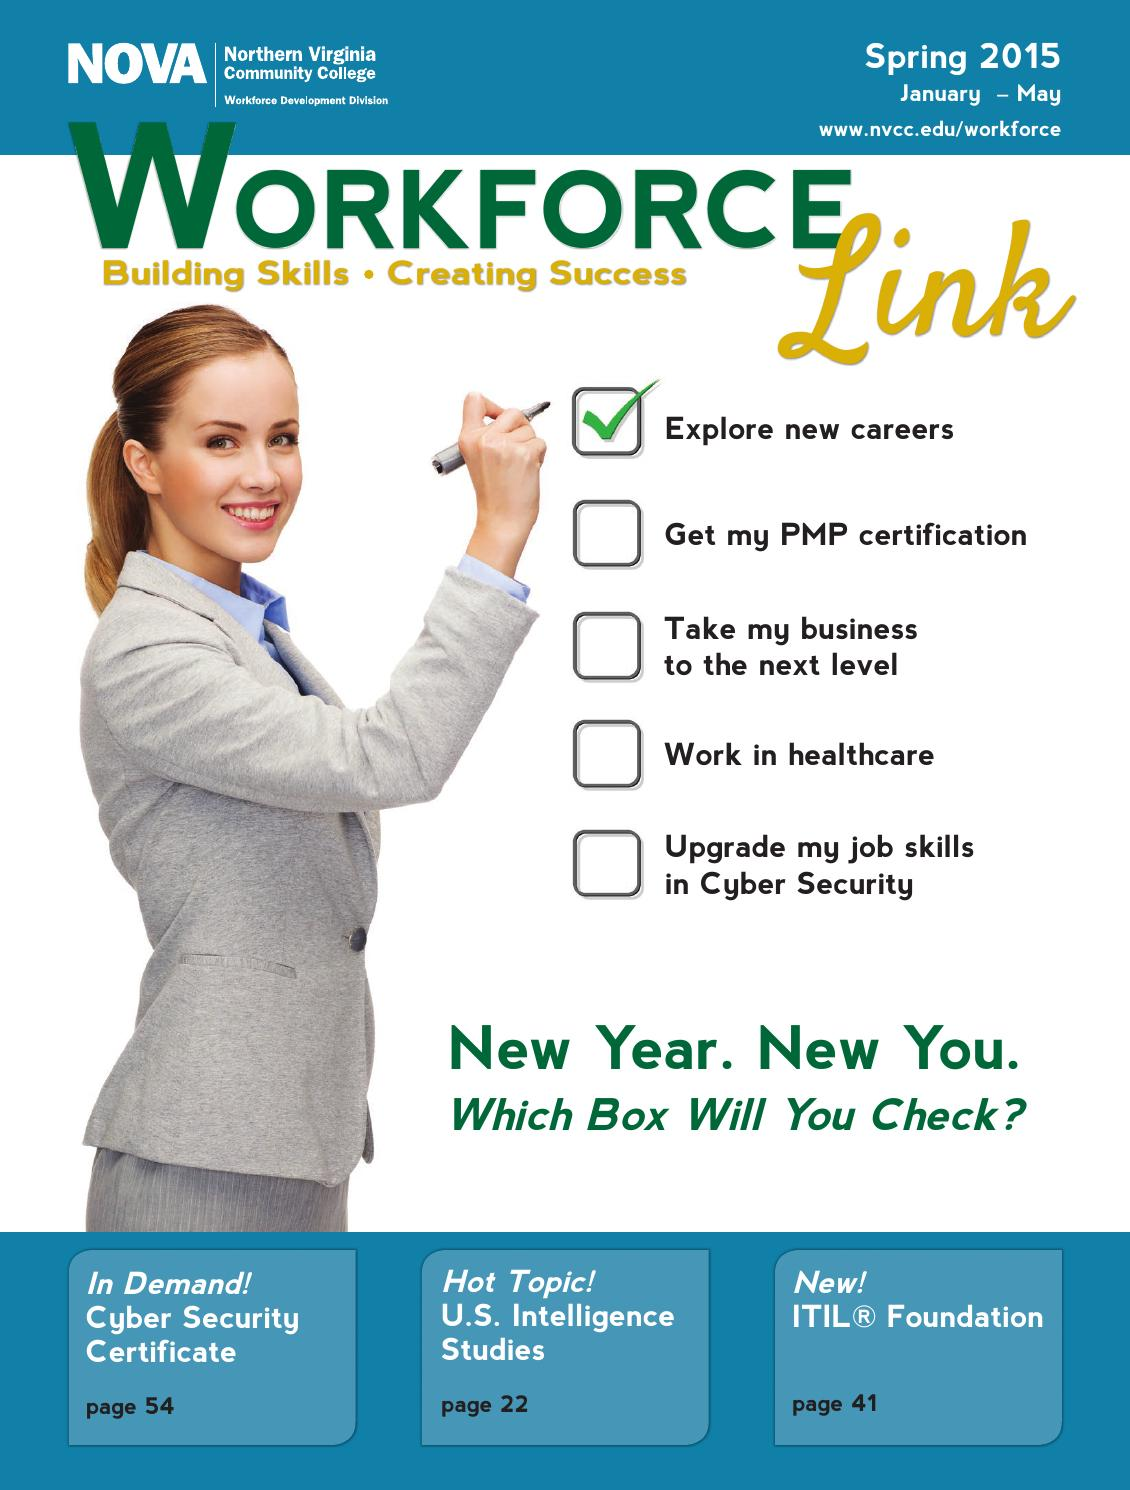 Nova S Workforce Link Spring 2015 By Nova S Workforce Issuu